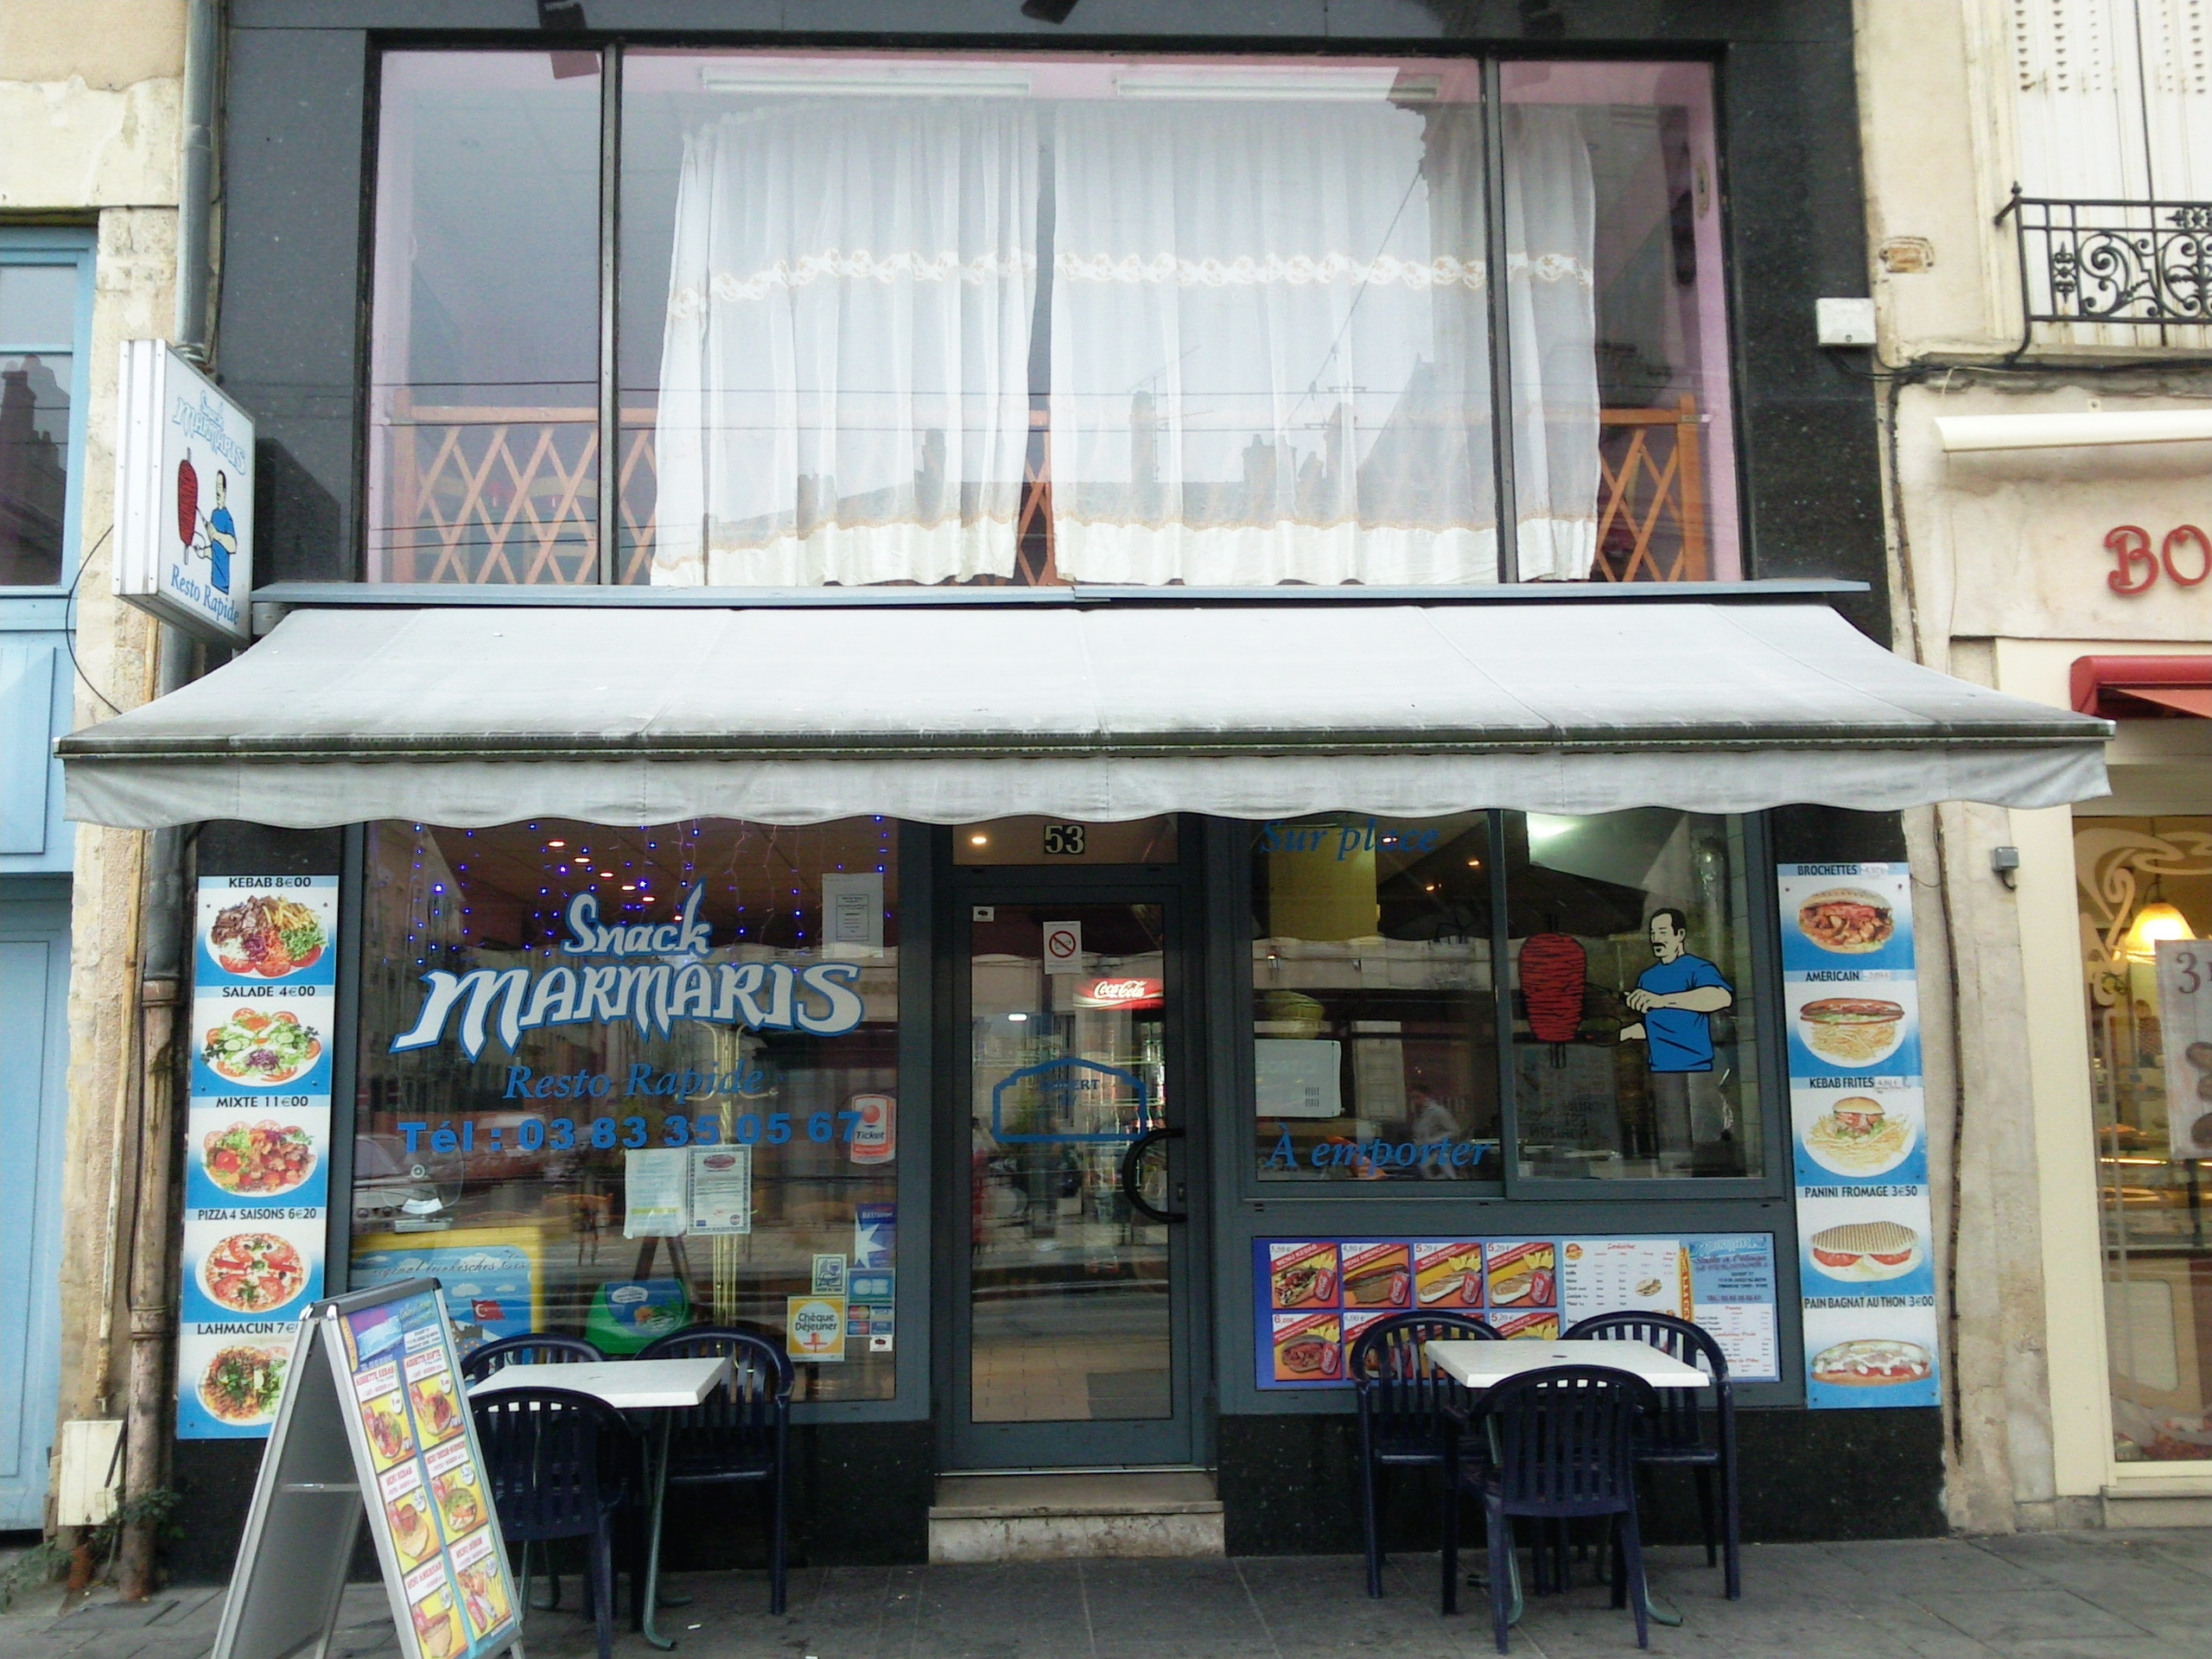 Restaurant Marmaris à Nancy